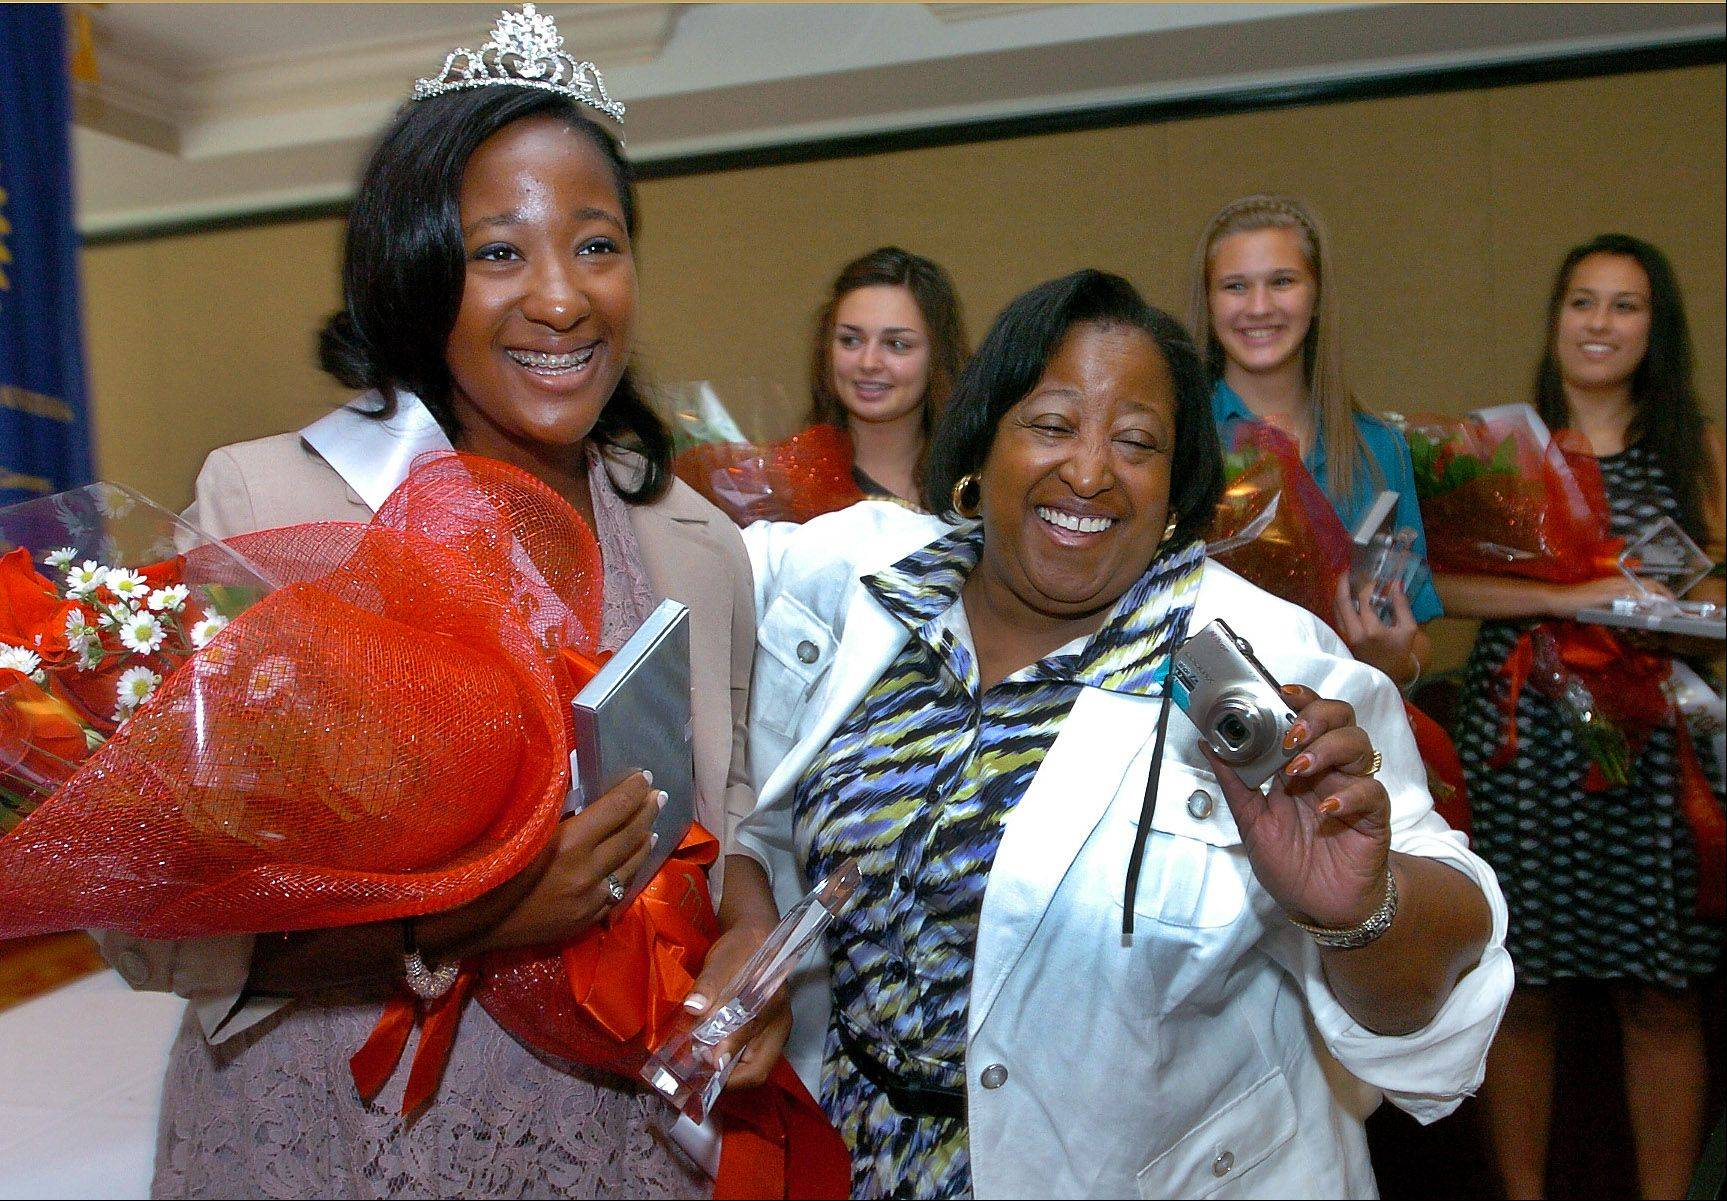 Schaumburg's Miss Septemberfest 2012, Mariah Ghant, is congratulated by her mom, Adrian Greenwood, after being crowned Friday at Bridges of Poplar Creek Country Club in Hoffman Estates.